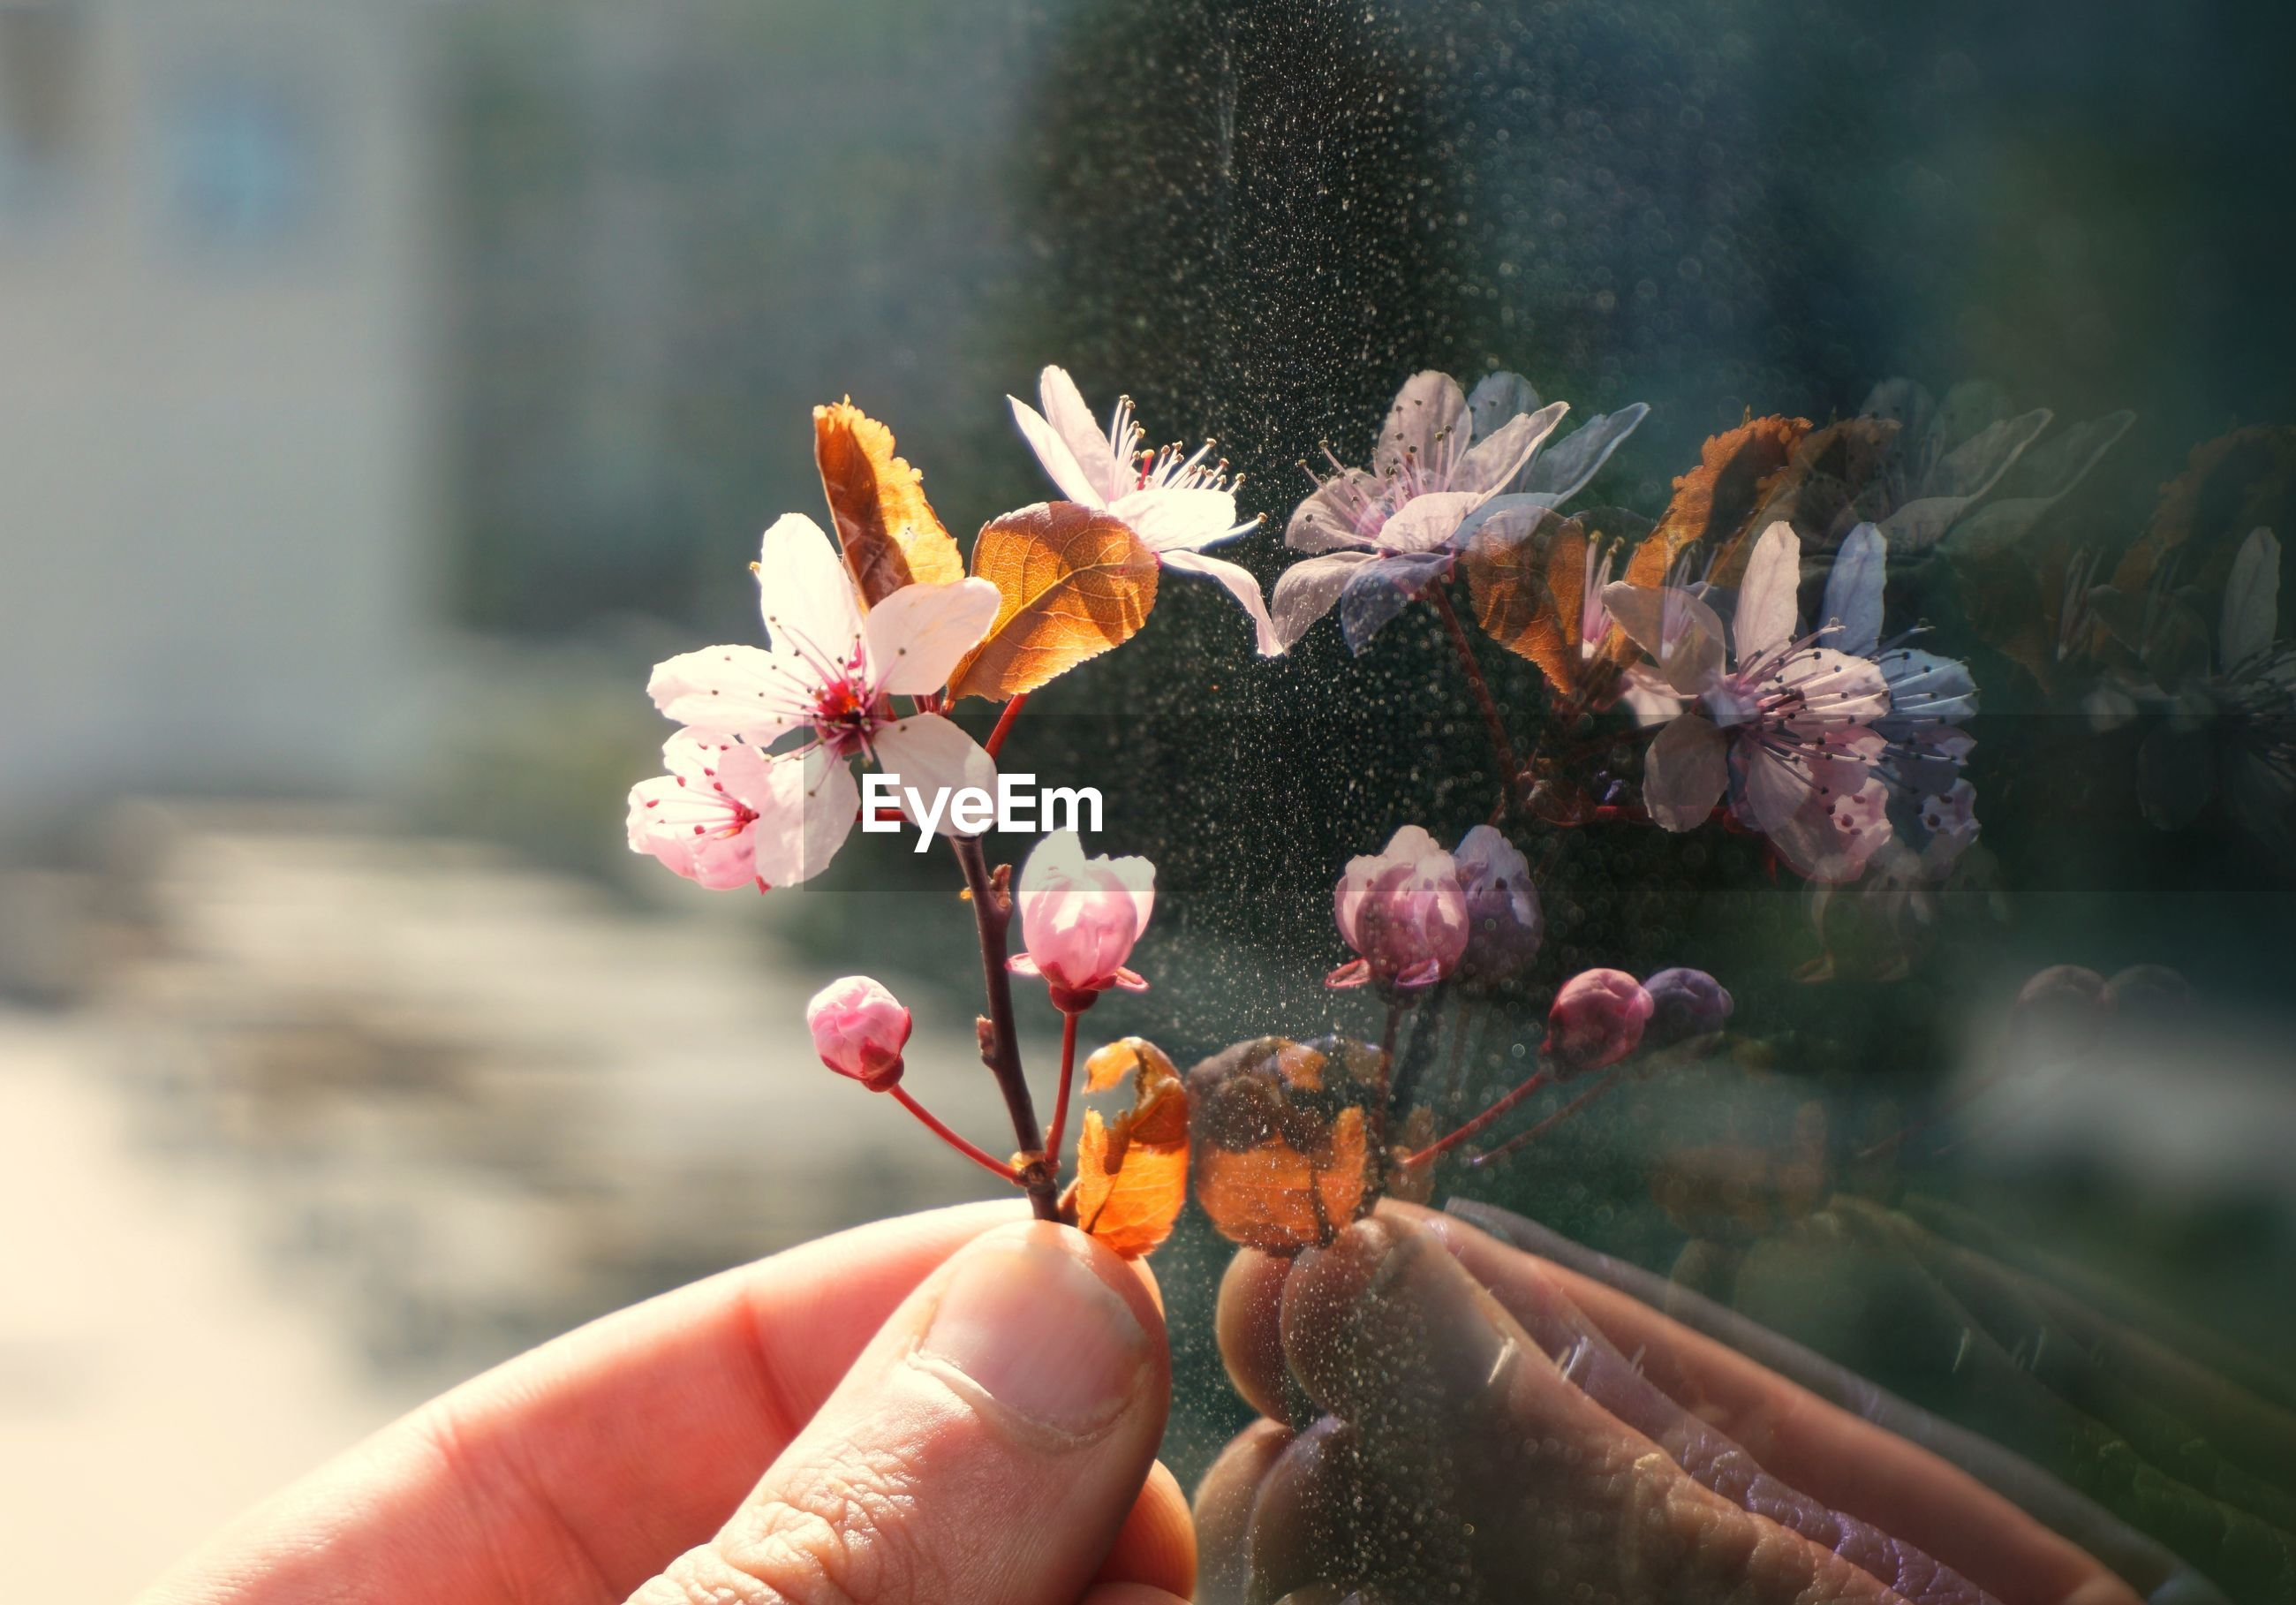 Close-up of hand holding flower by window